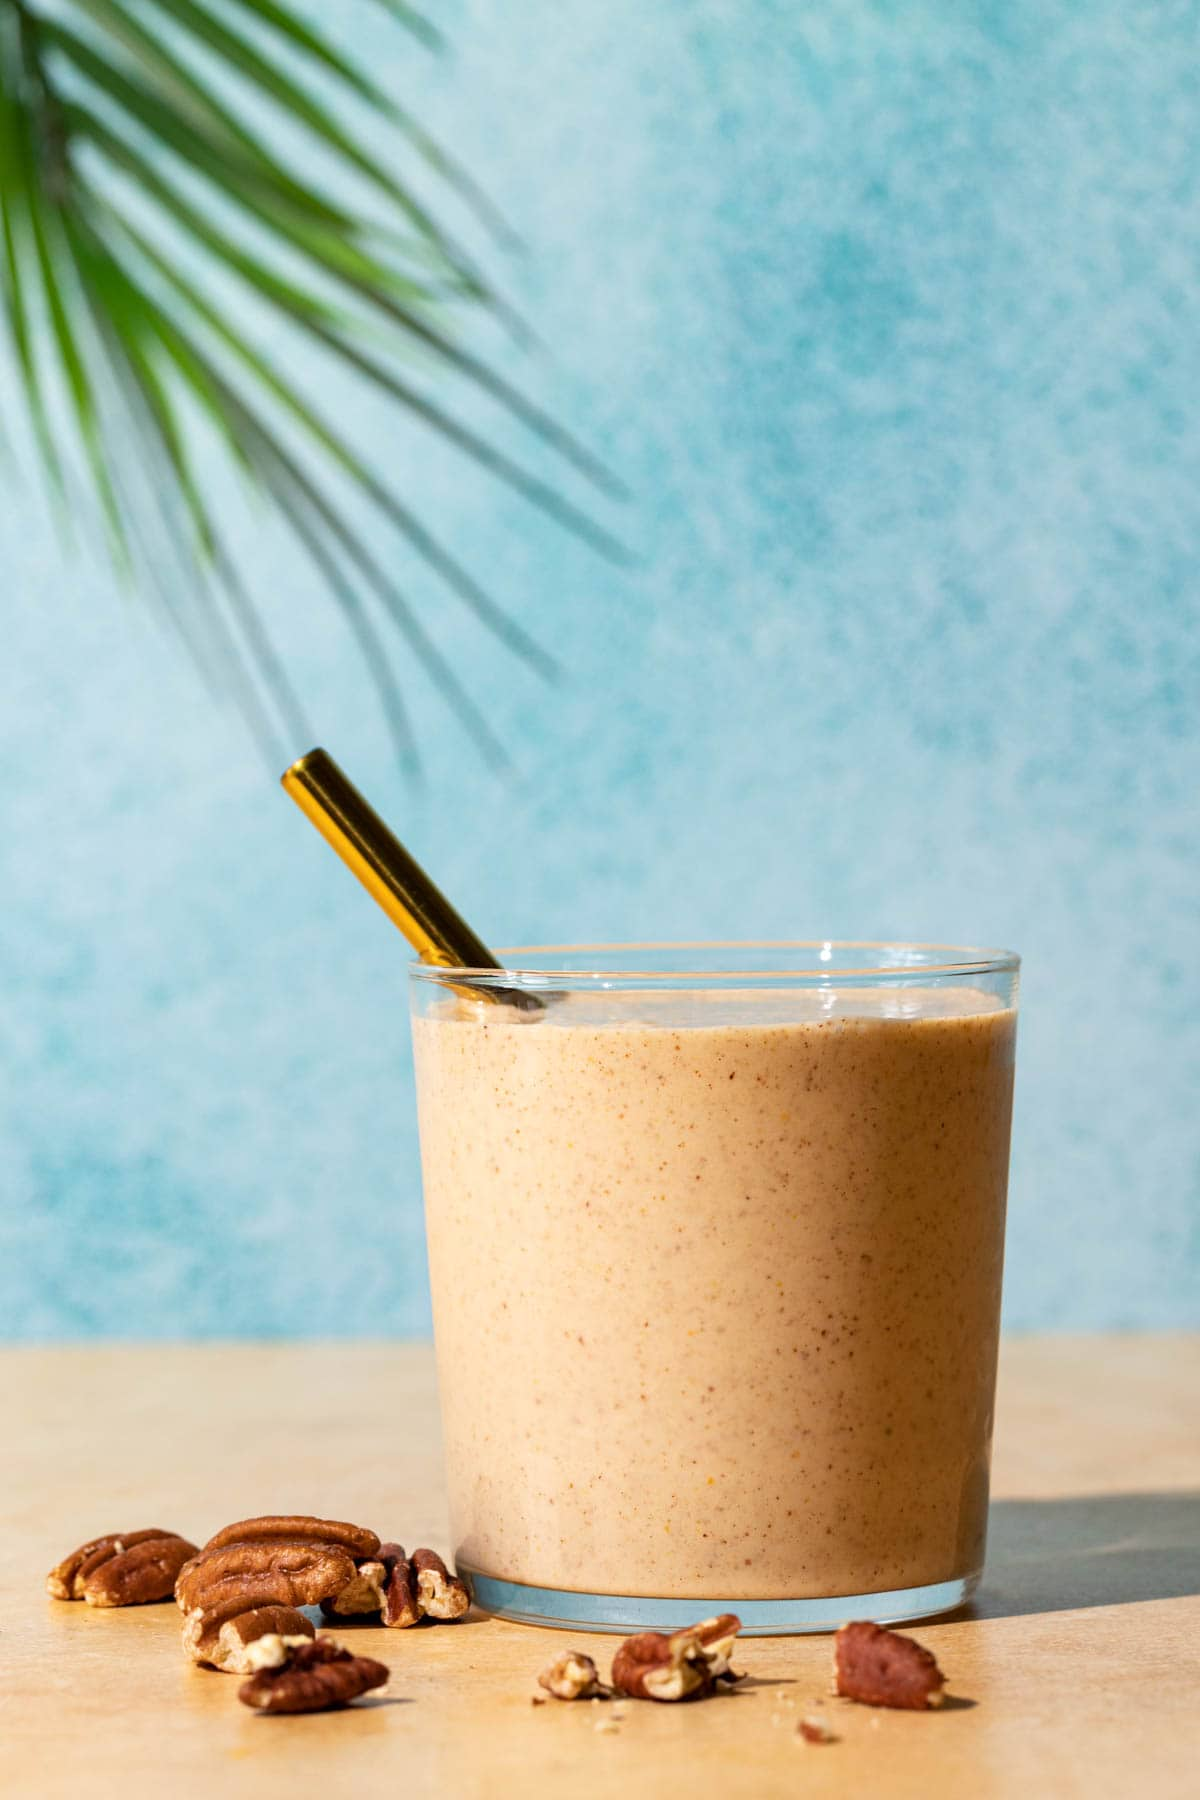 Banana Bread smoothie with crushed toasted pecans in front on a blue and yellow background